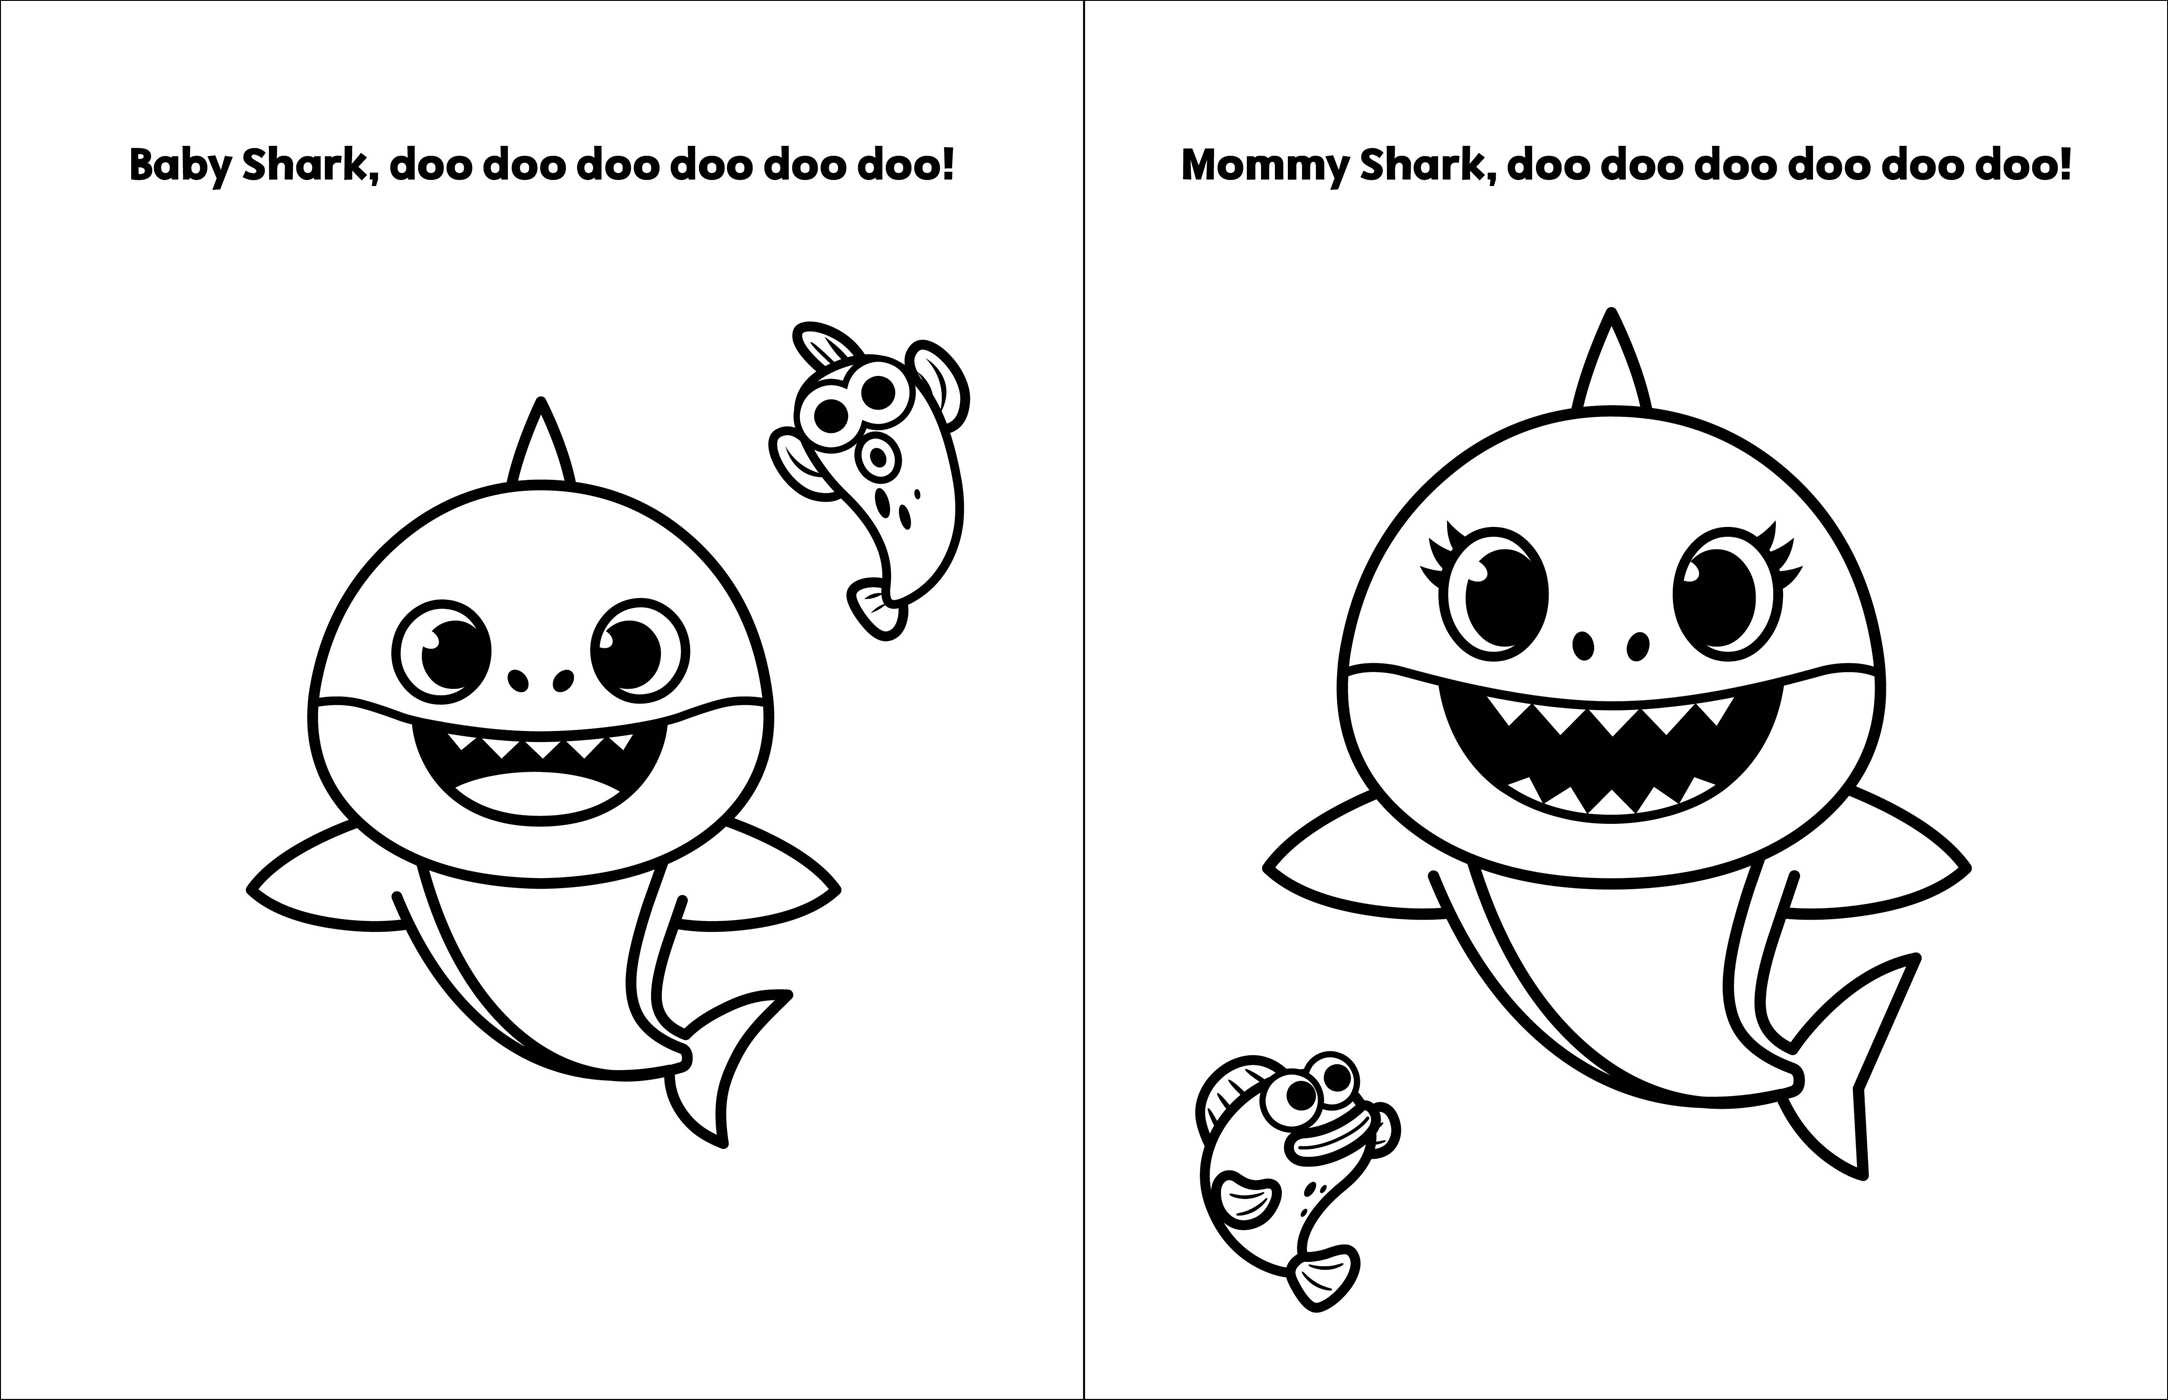 sea doo coloring pages coloring pages sea animals home sketch coloring page pages sea coloring doo